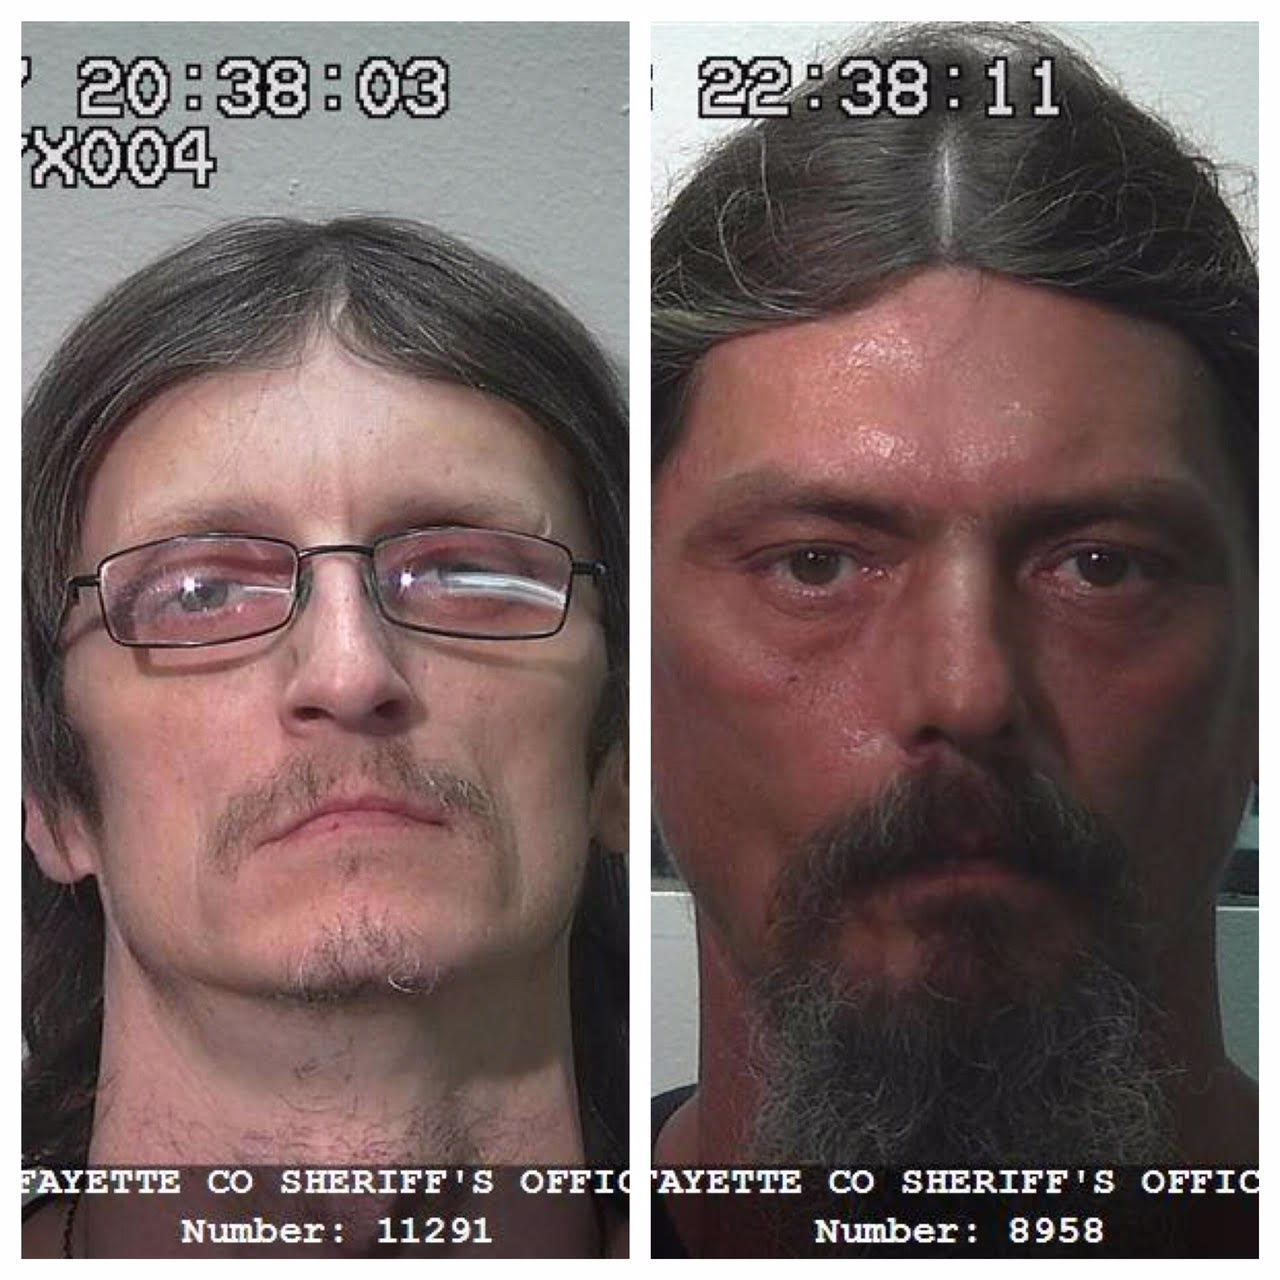 Two Vandalia men in the Fayette County Jail on Burglary Charges, arrested after search Sunday morning